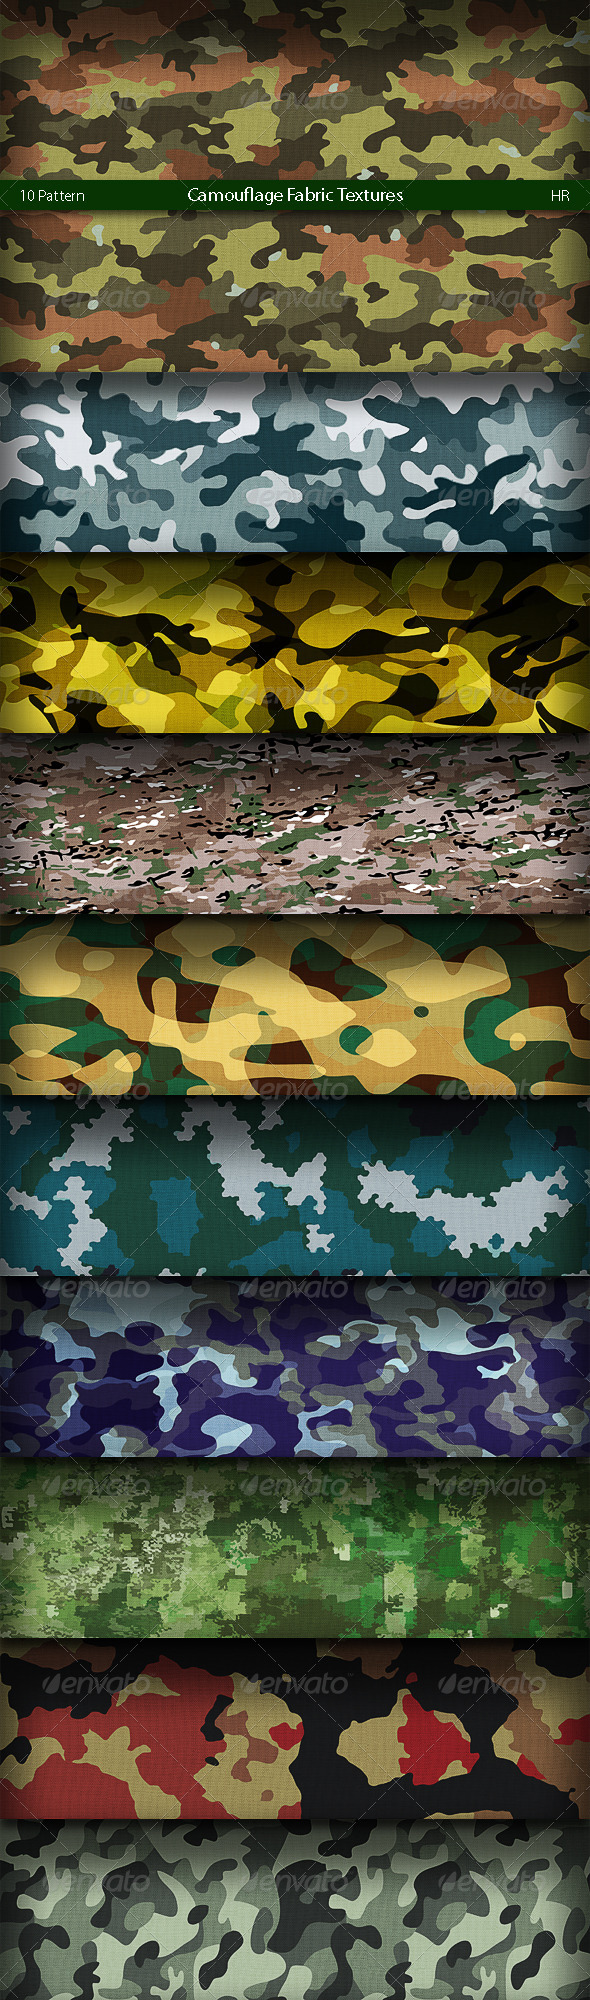 Camouflage Texture Backgrounds - Patterns Backgrounds